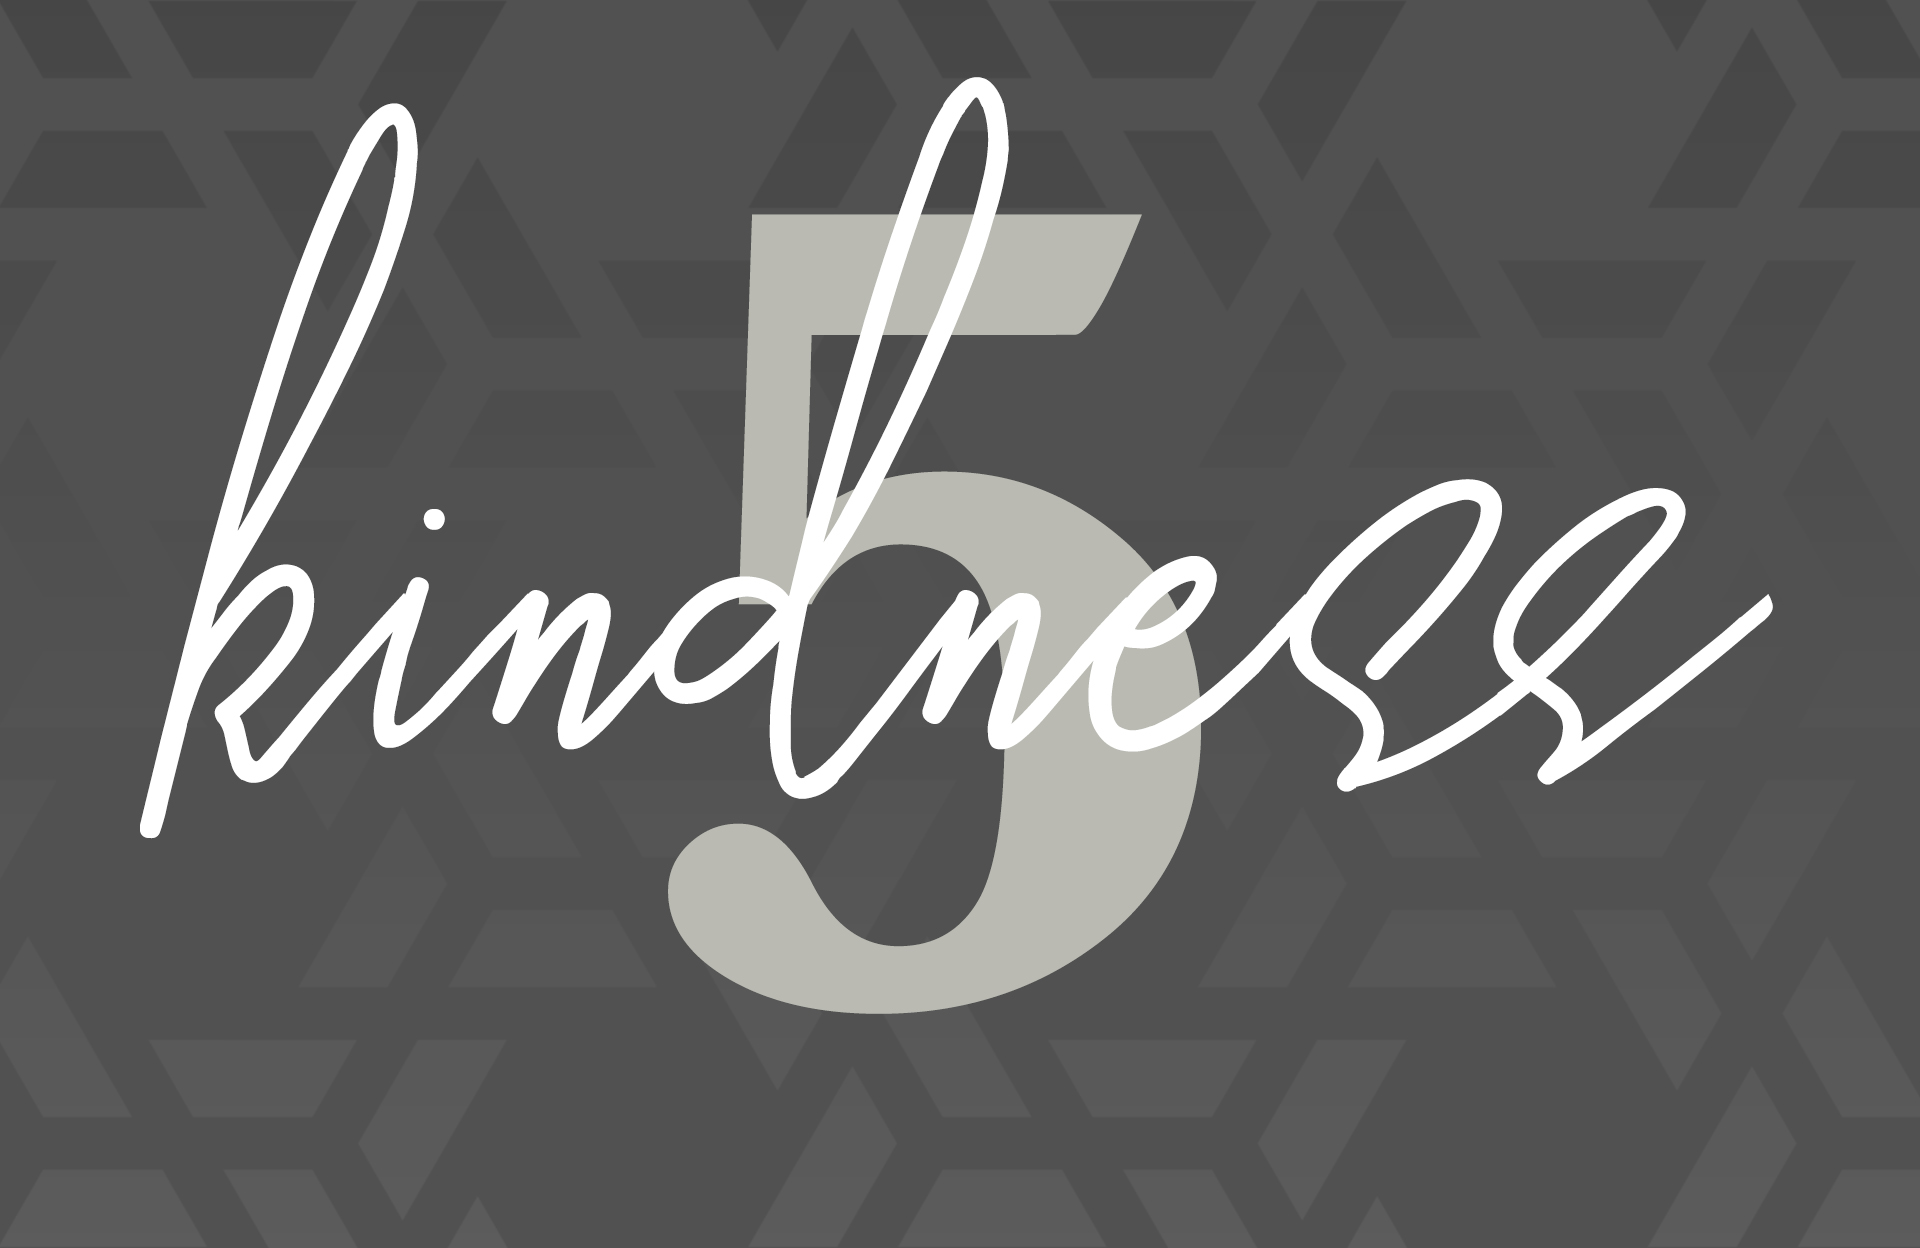 Day Five: Kindness